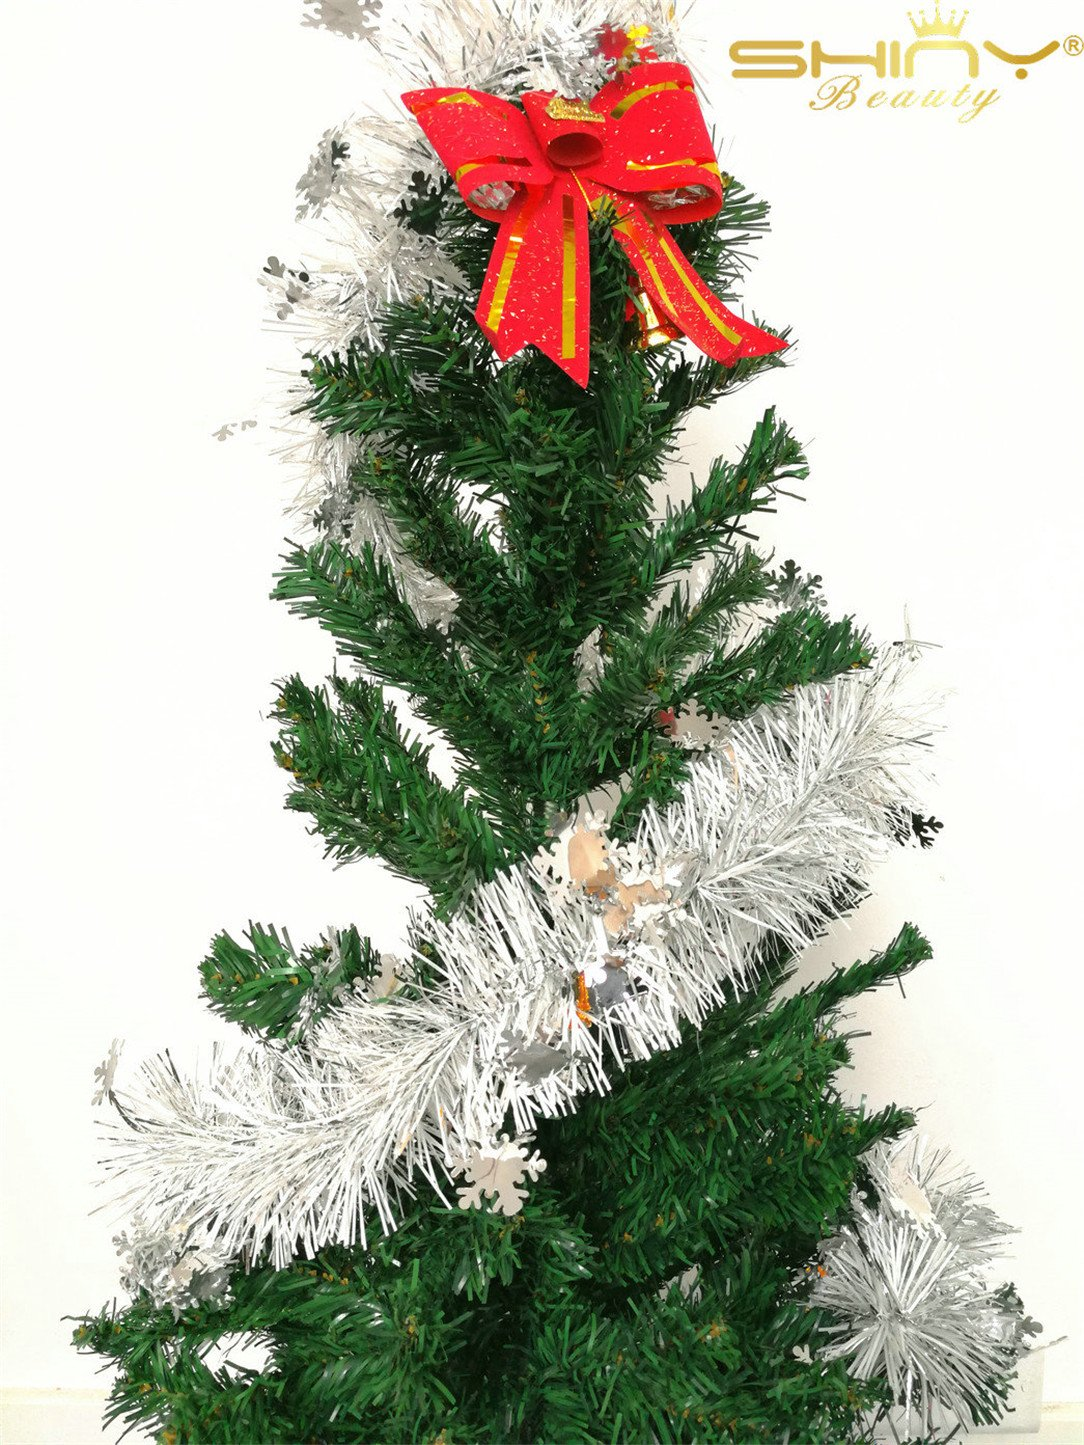 DUOBAO Christmas Tinsel Garland-Silver Snow,Sparkly Classic Party Ornaments Hanging Xmas Tree Ceiling Decorations, 15 Packs 6.6 Ft (2M) x 3.4 inch Wide~1024S